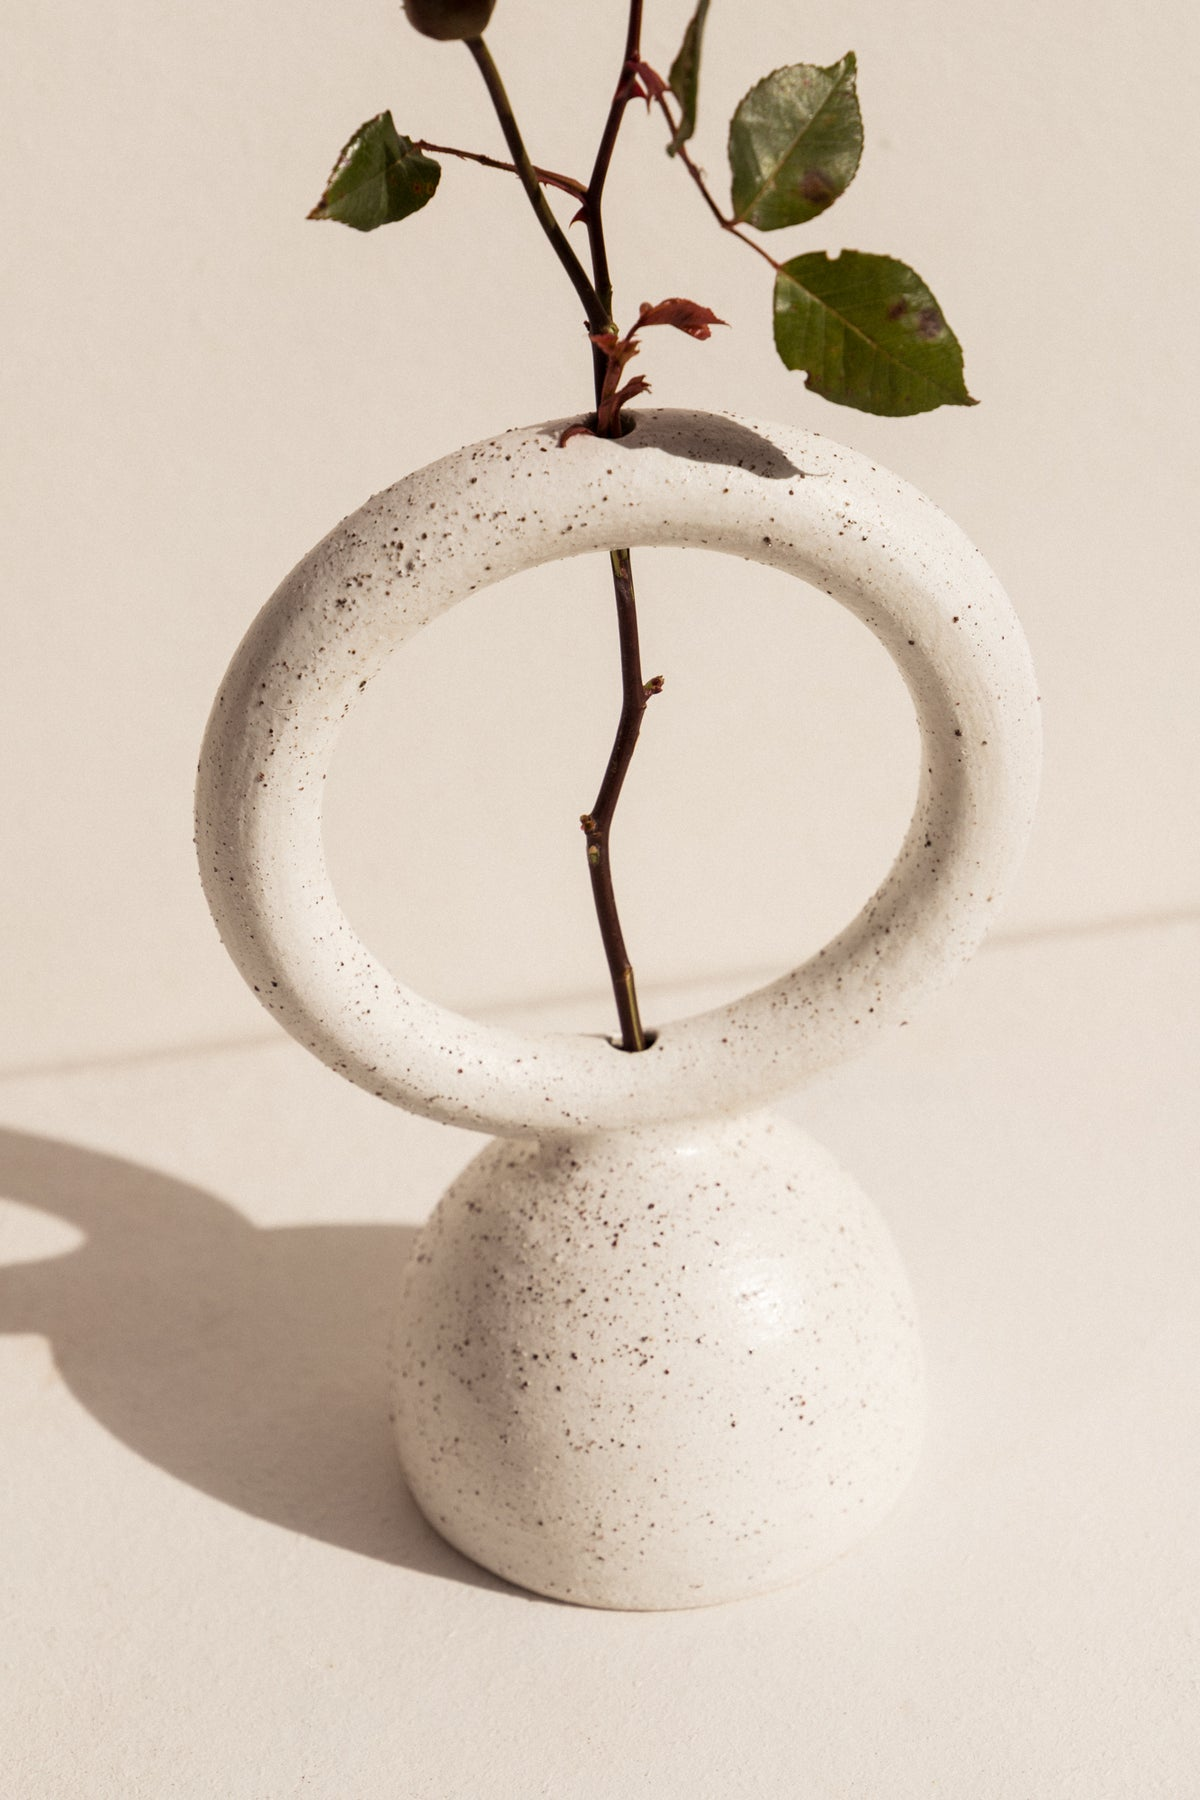 Eun Ceramics white Femme #5 ceramic vase on Makers' Mrkt makers market Melbourne. Handmade shop small